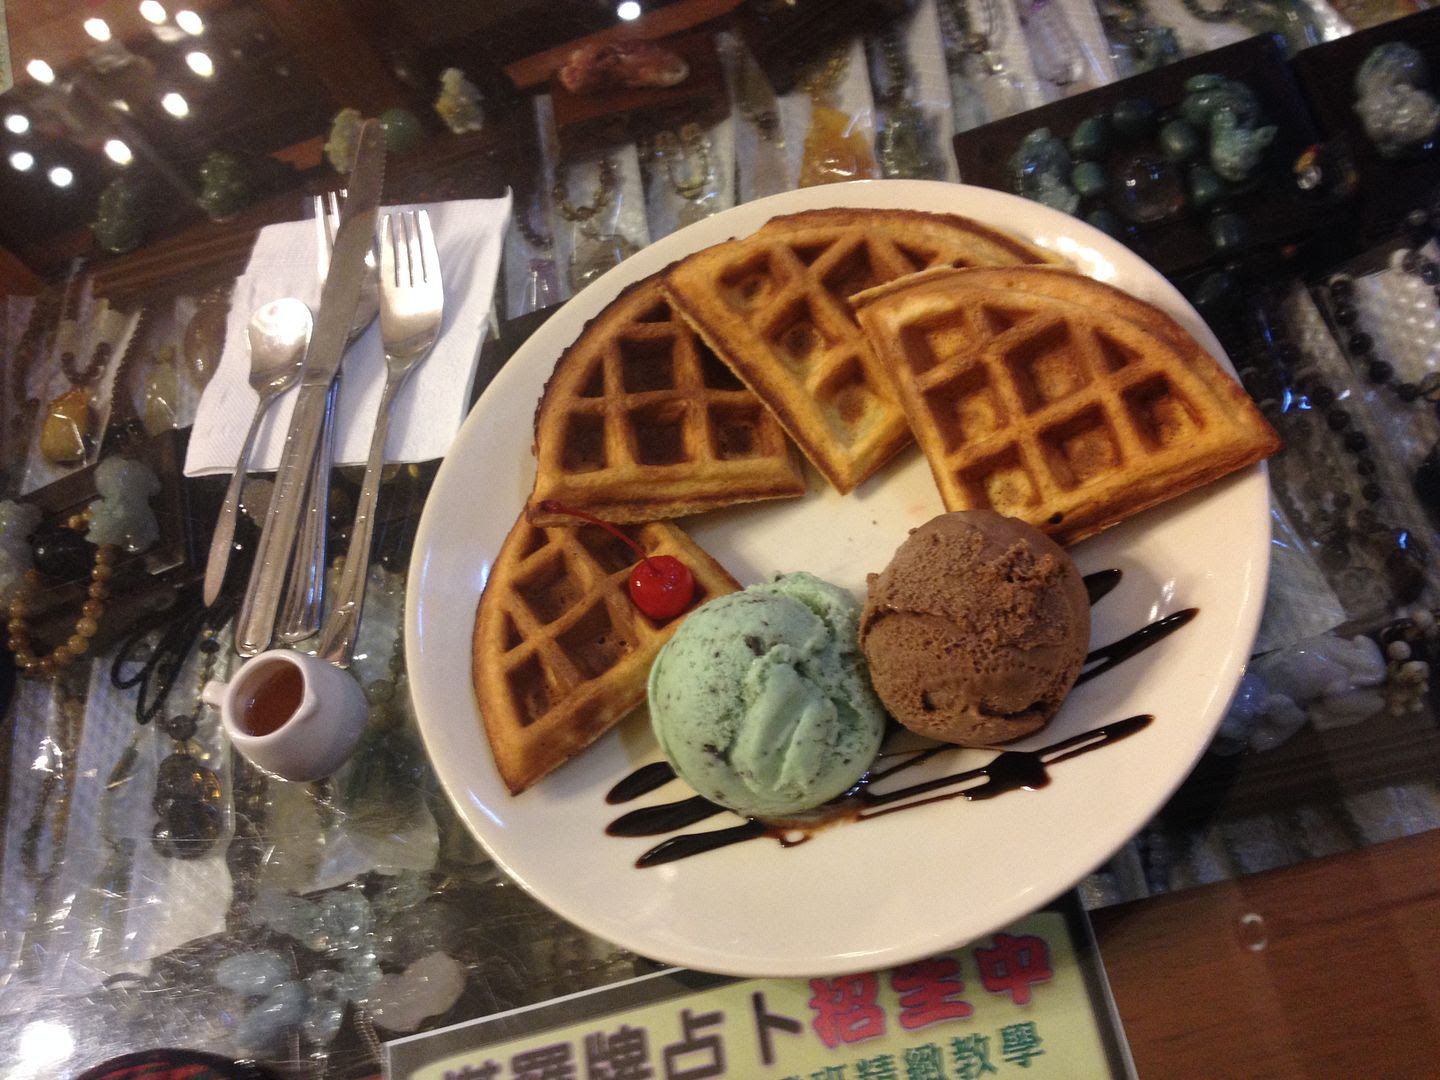 Waffles and Ice Cream for New Year's Eve